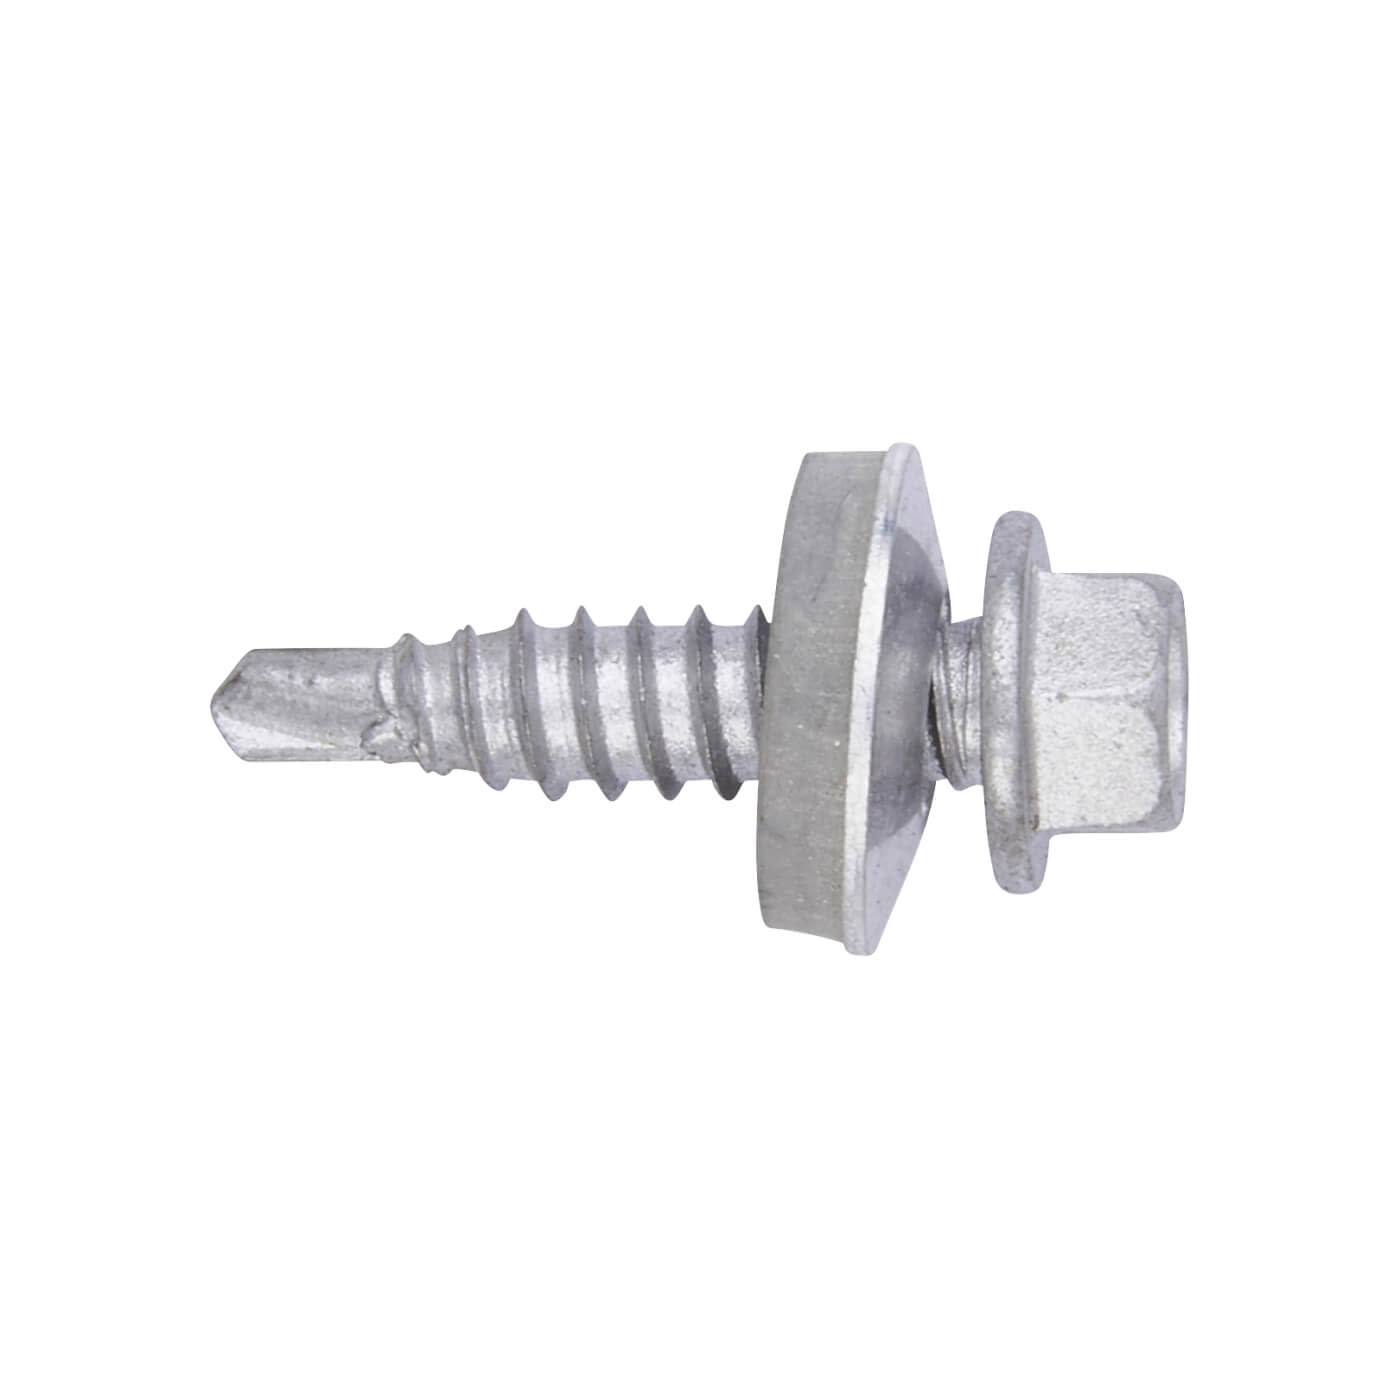 TIMco Stitching Screw for Light Section Steel - 6.3 x 25mm - Pack 100)